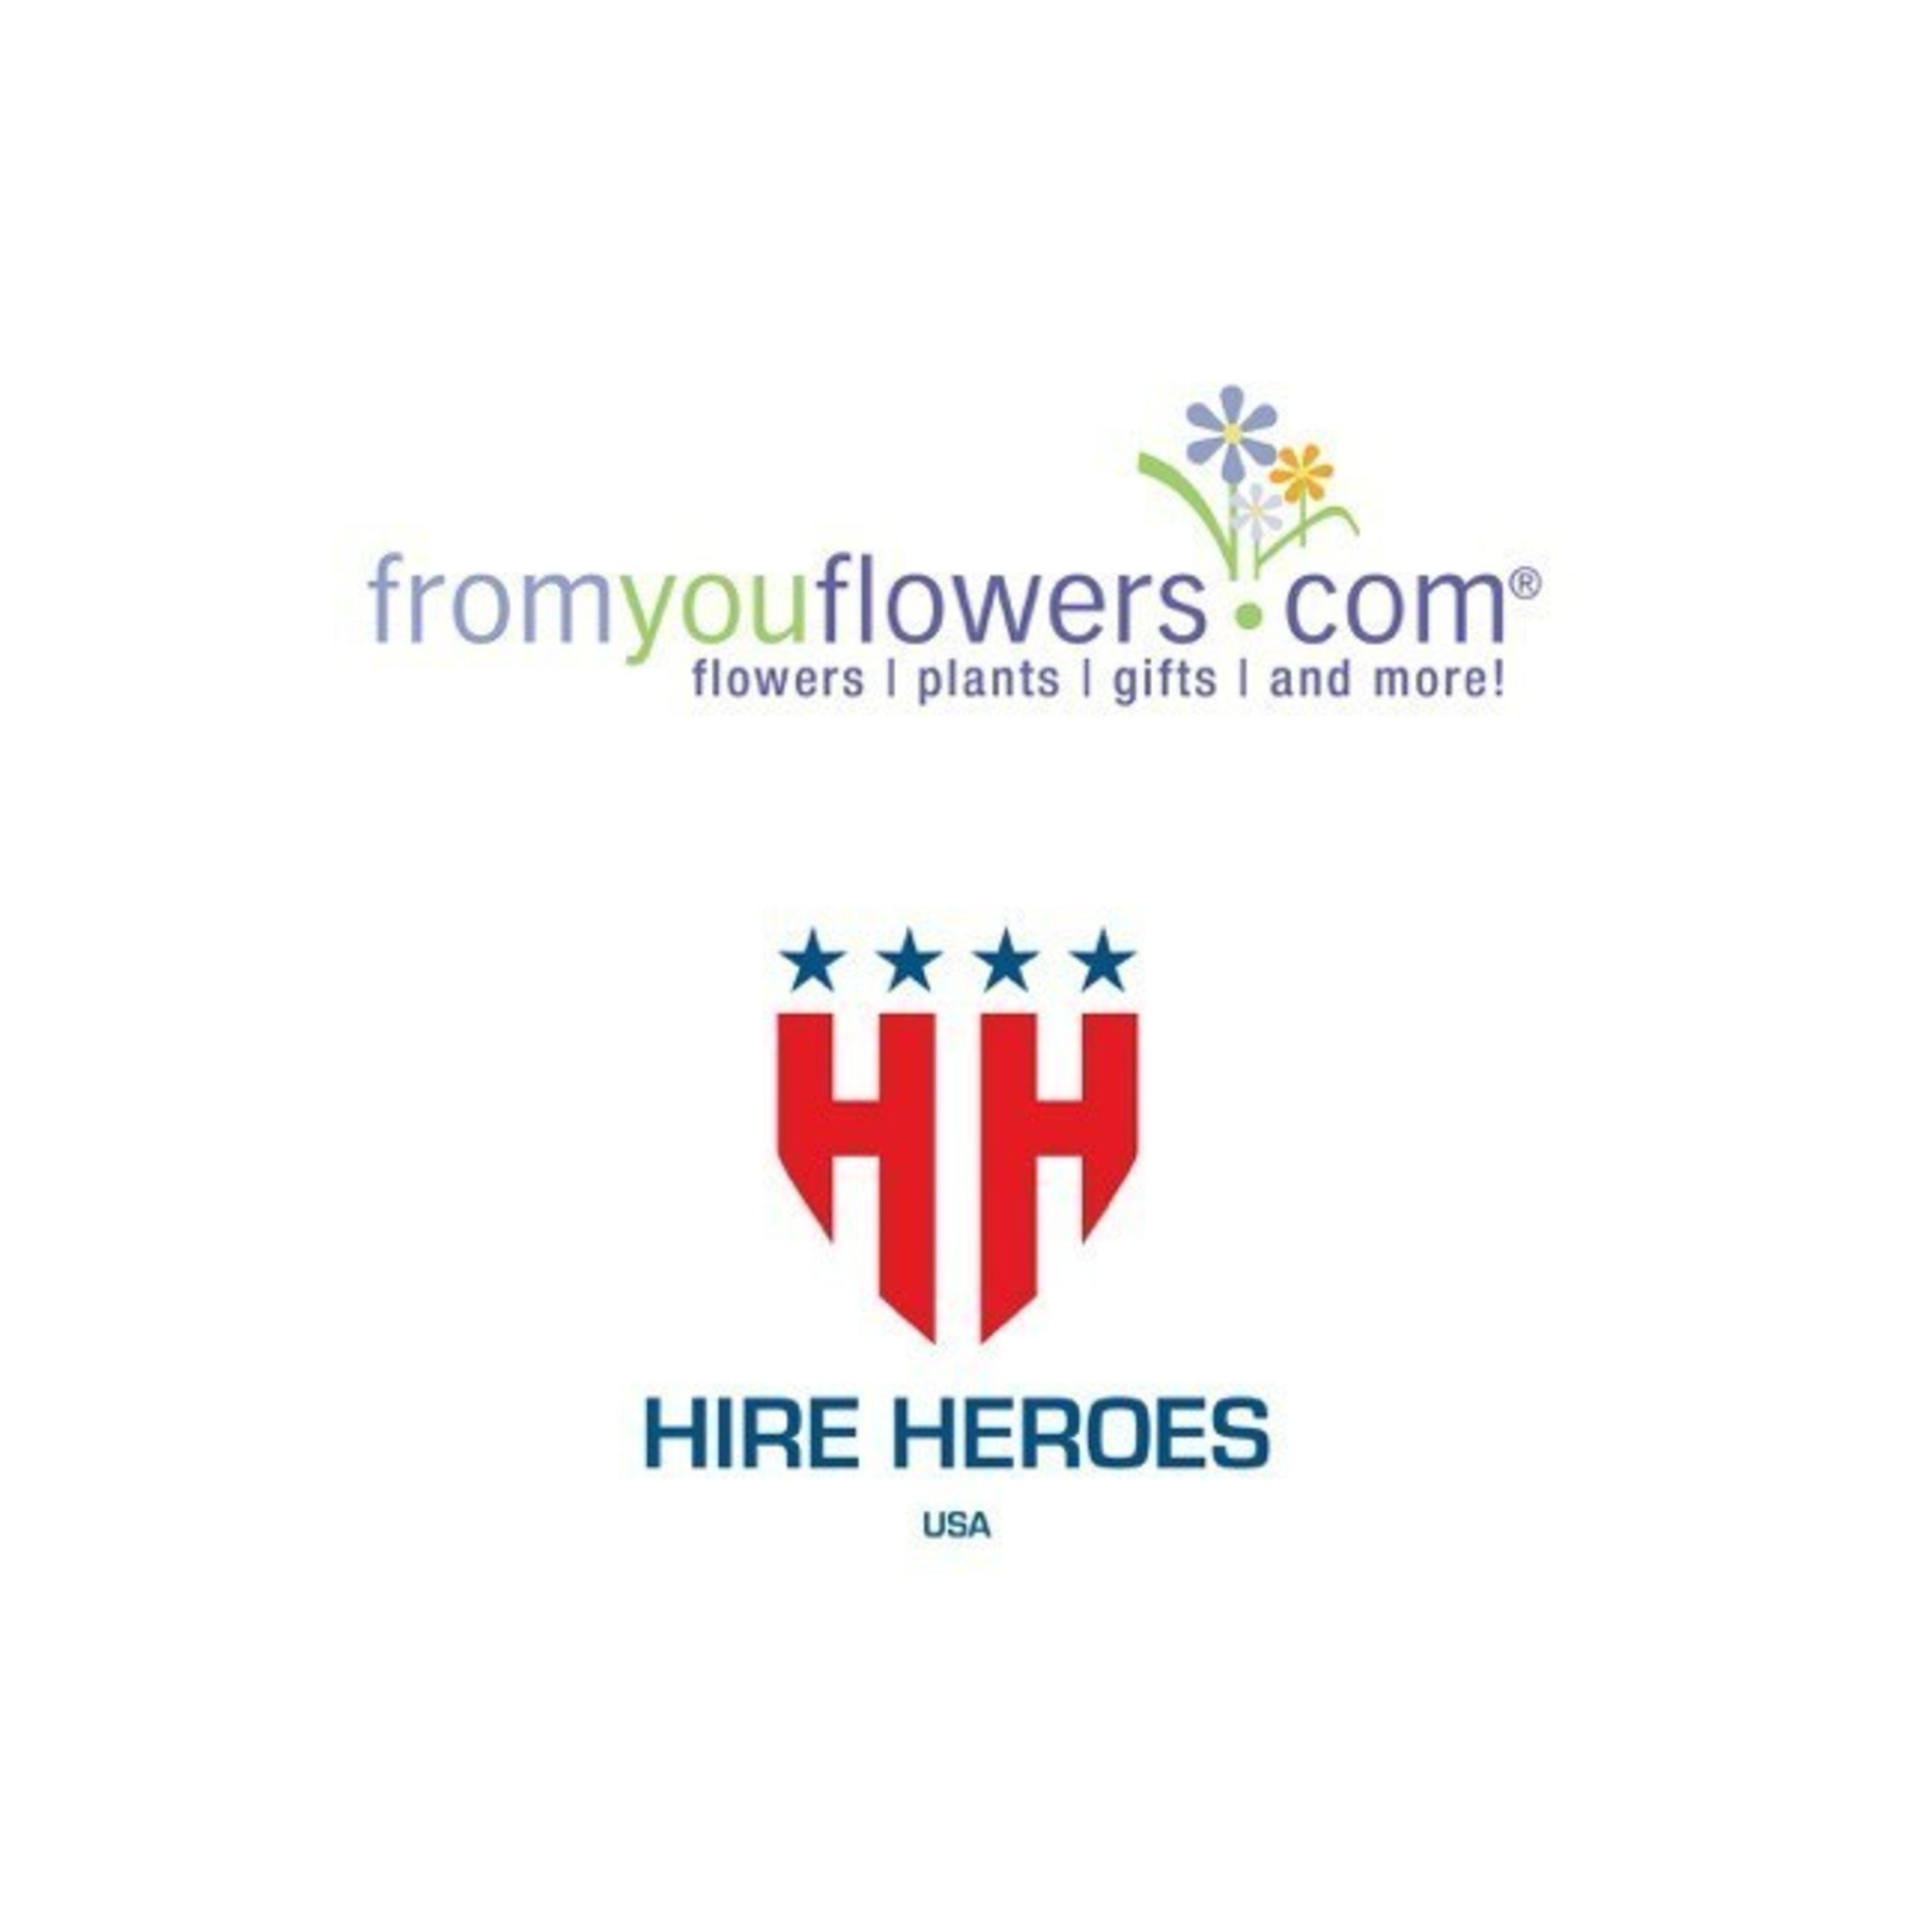 From You Flowers Donates $11,850 to Nonprofit Hire Heroes USA